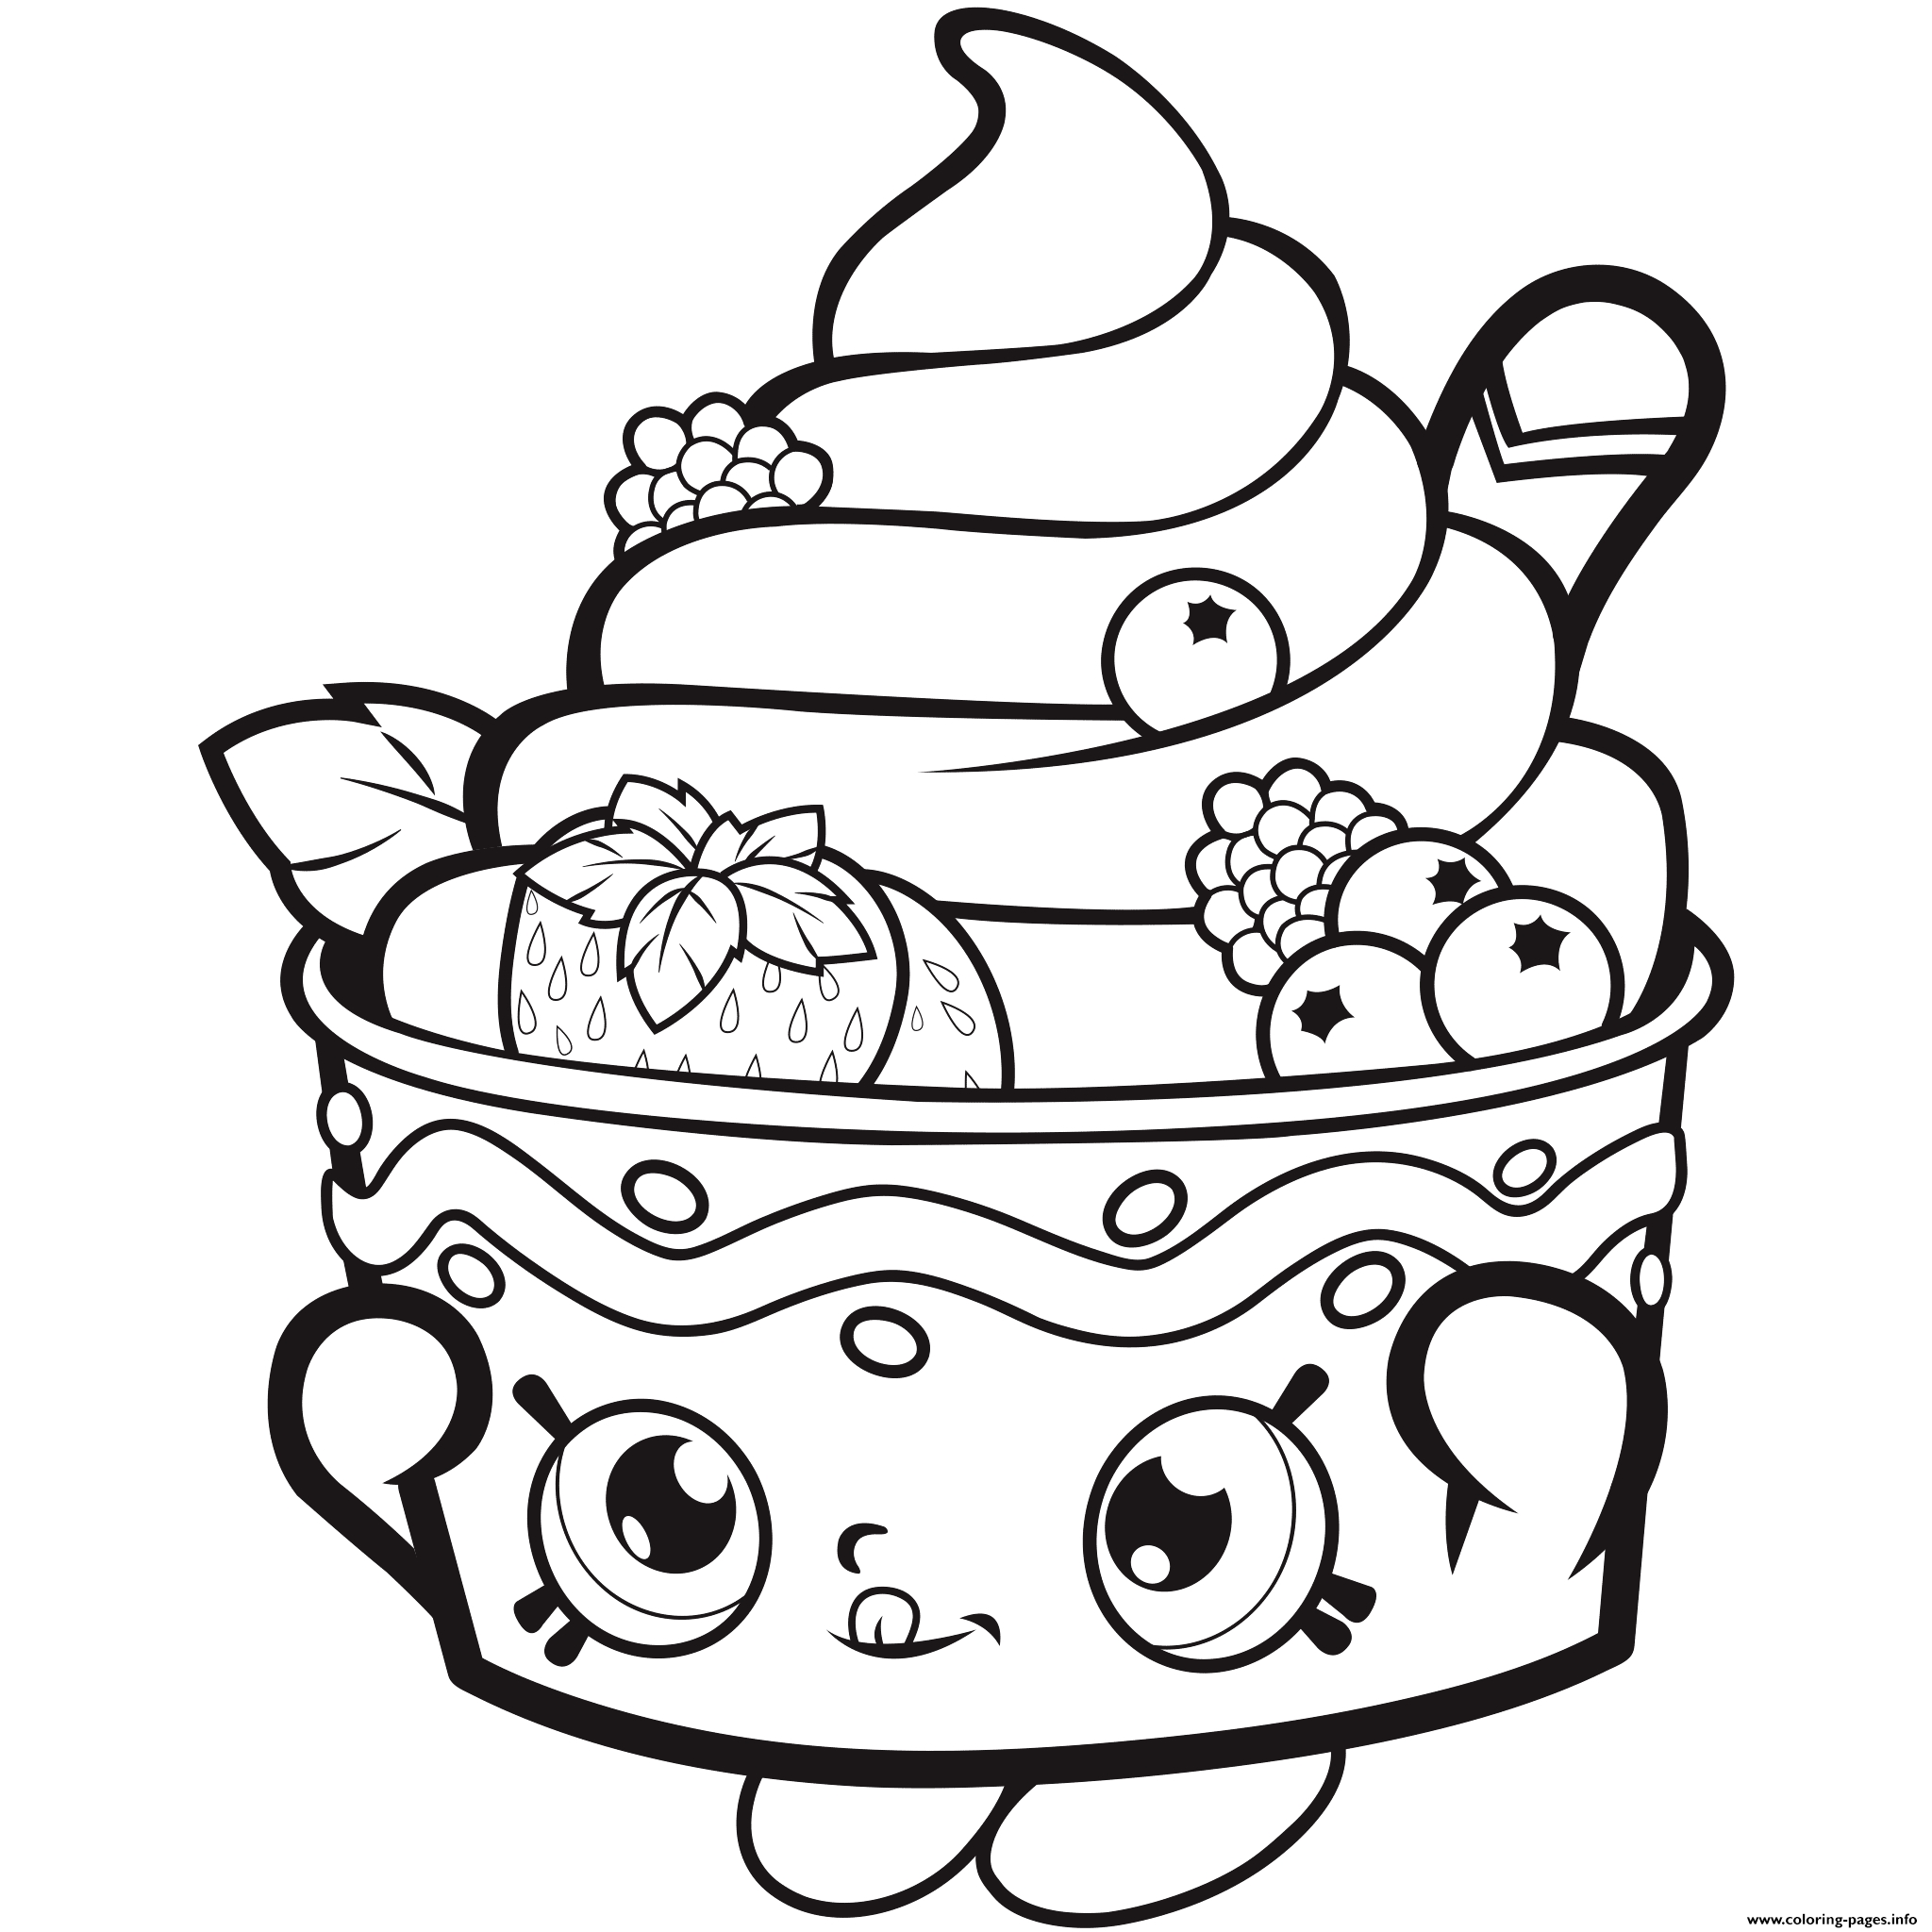 Printable Shopkins Coloring Pages Free At Getdrawings Free Download